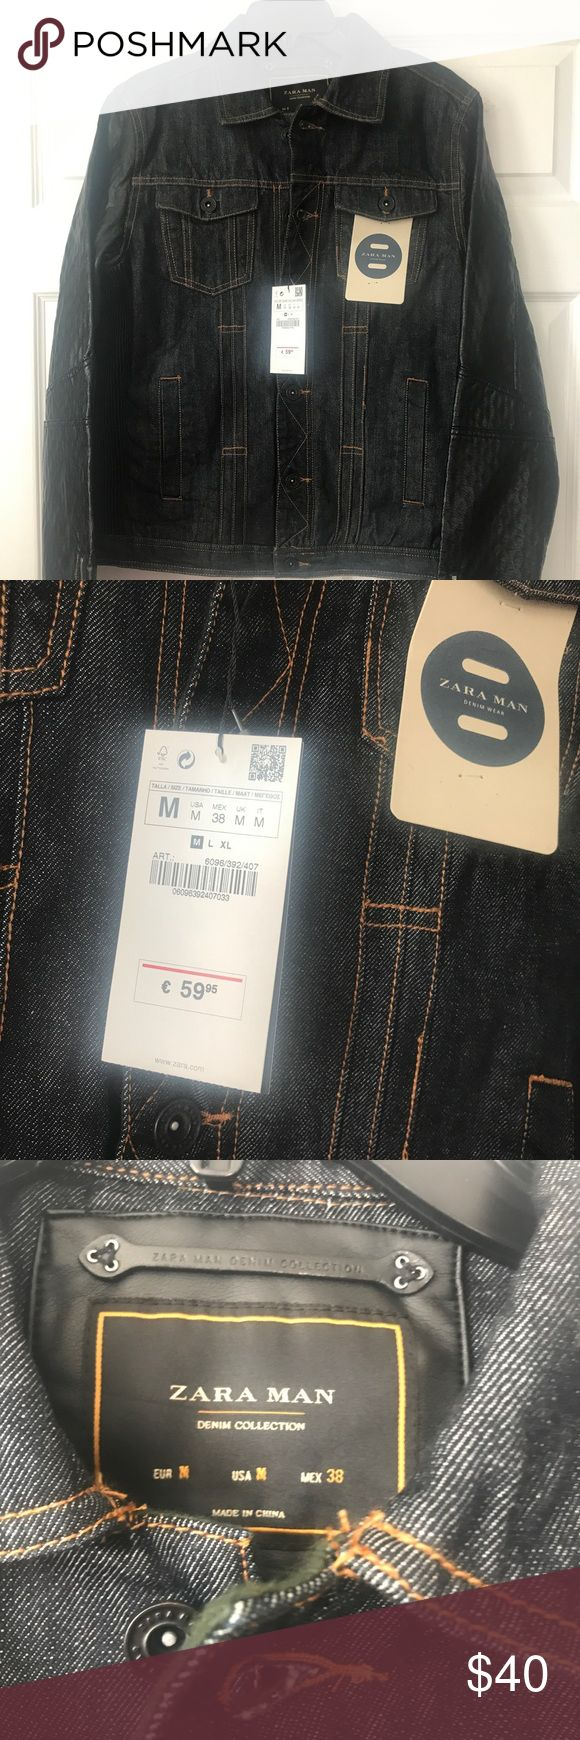 SALE! Zara man denim and leather jacket Brand new.sleeve length from seam is 26.5 inches. Chest is 16 inches. Jacket length is 23.5 inches from the top shoulder seam Zara Jackets & Coats